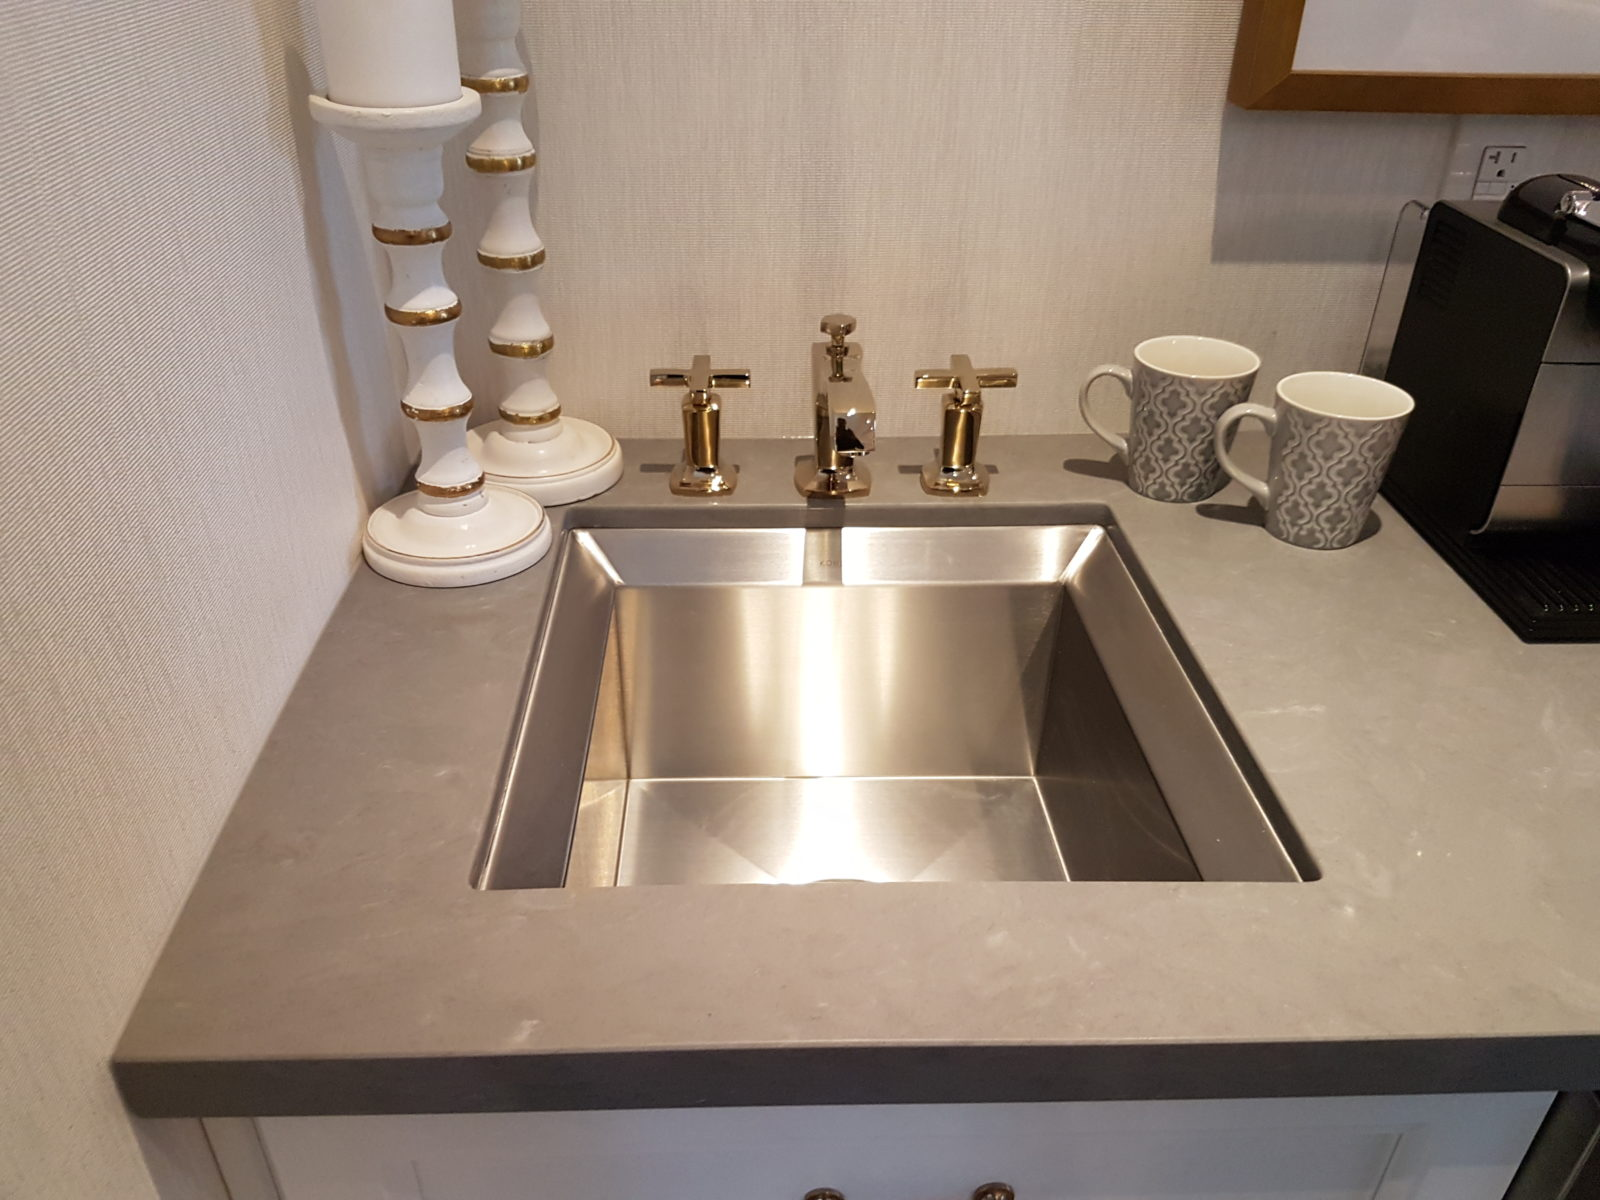 A Sink In The Bedroom? Why Not! Coffeebar